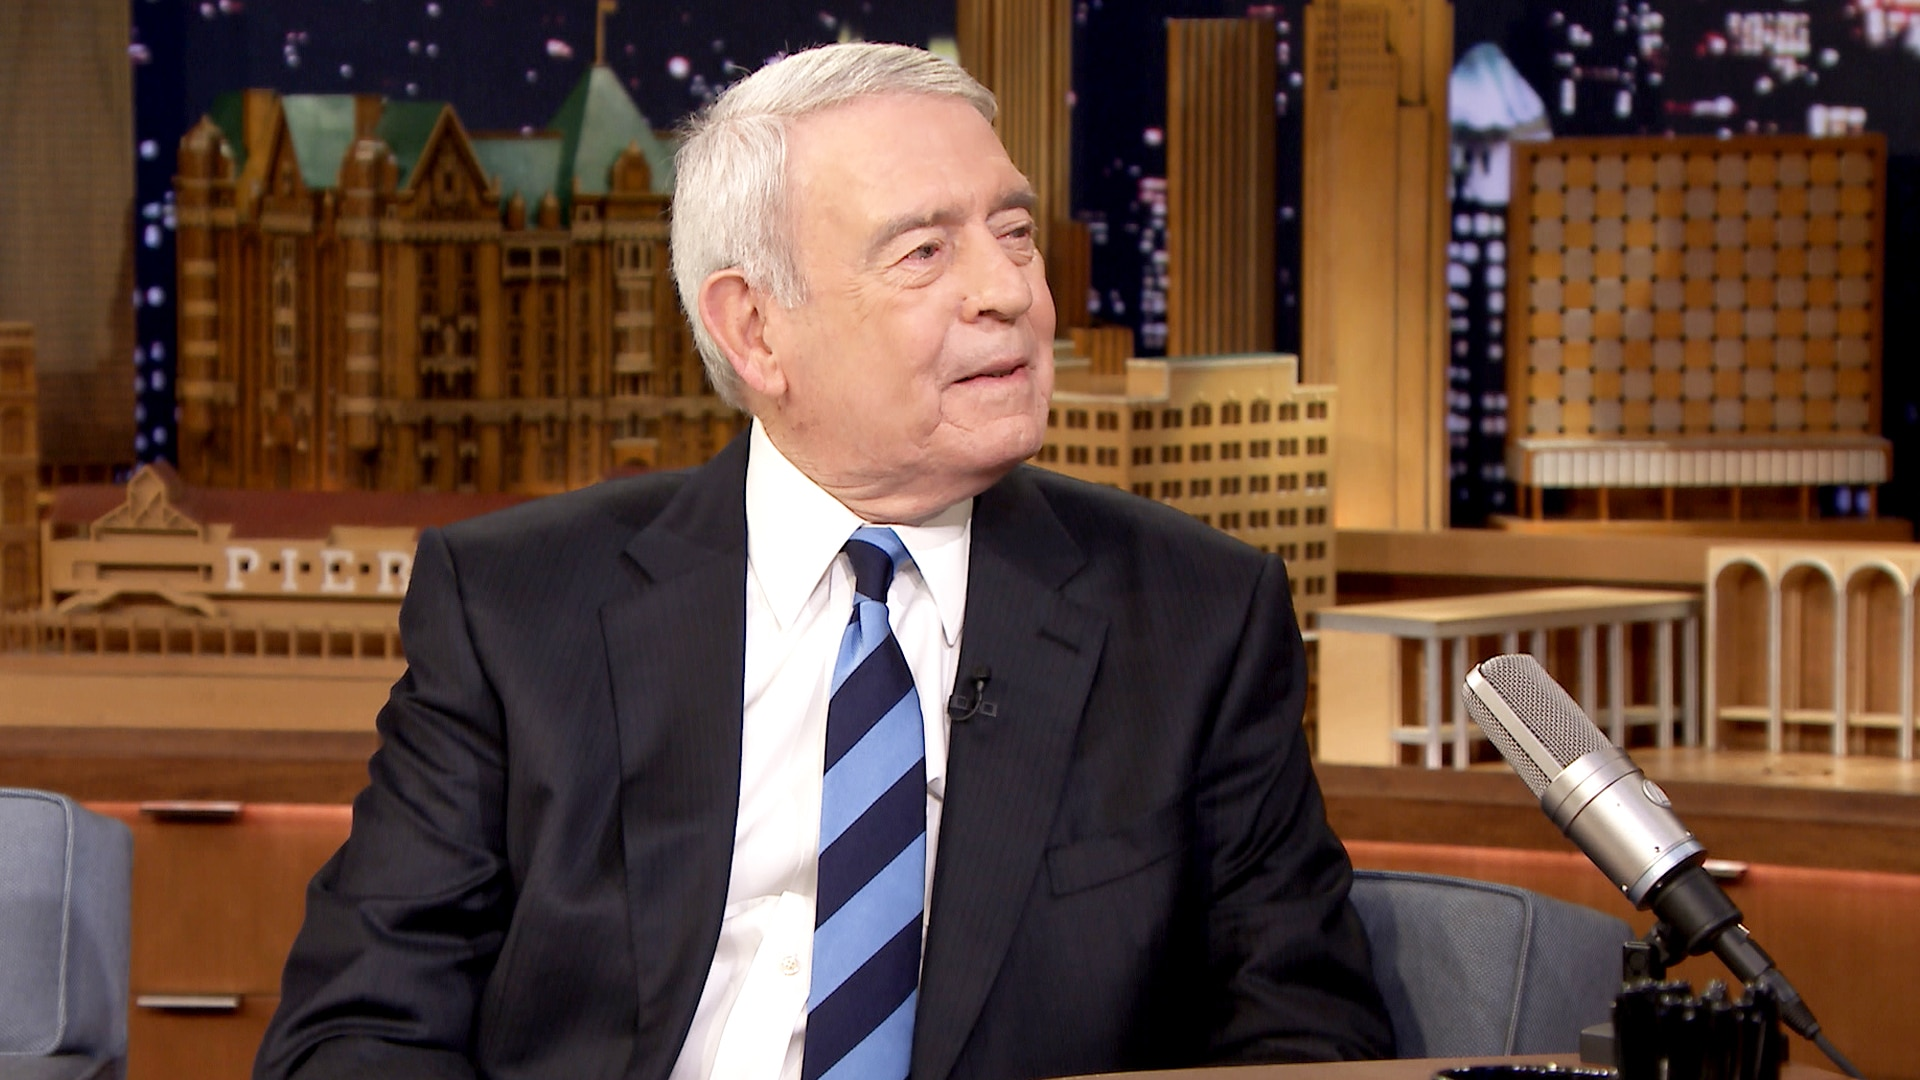 Jimmy Fallon Interviews Dan Rather About Facebook and Donald Trump